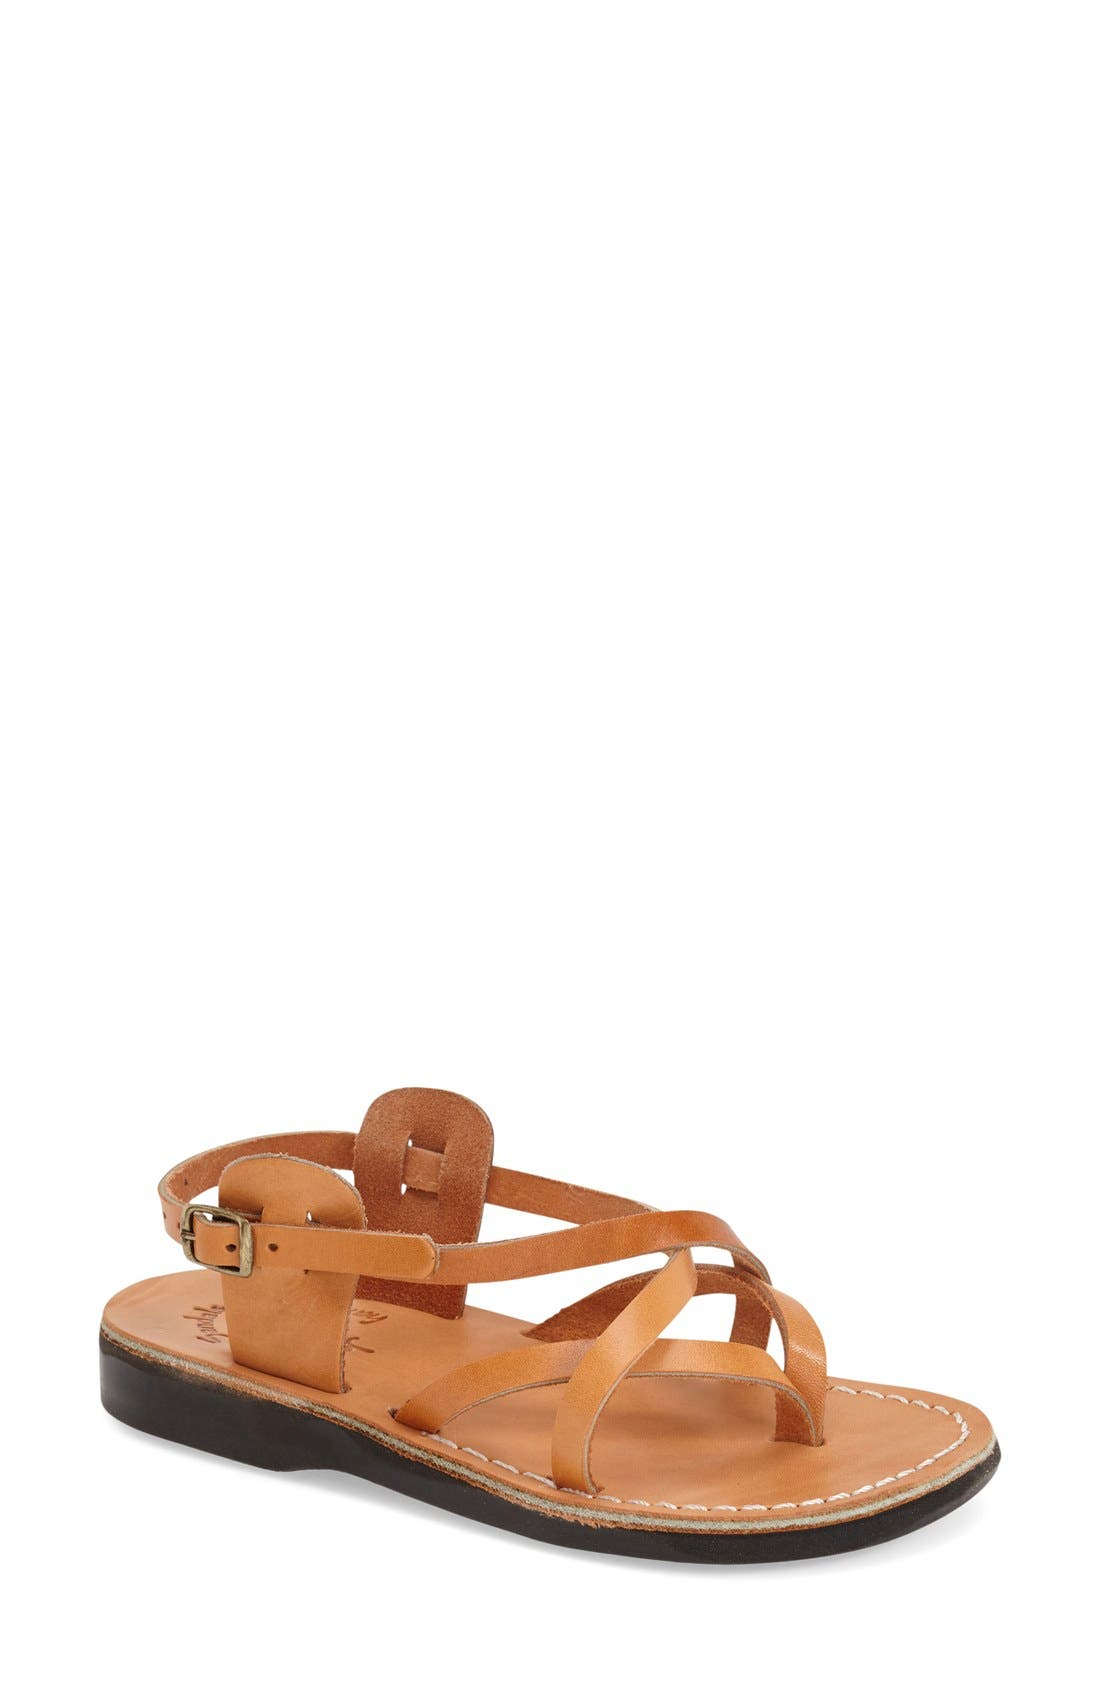 'Tamar' Strappy Sandal,                             Main thumbnail 1, color,                             201